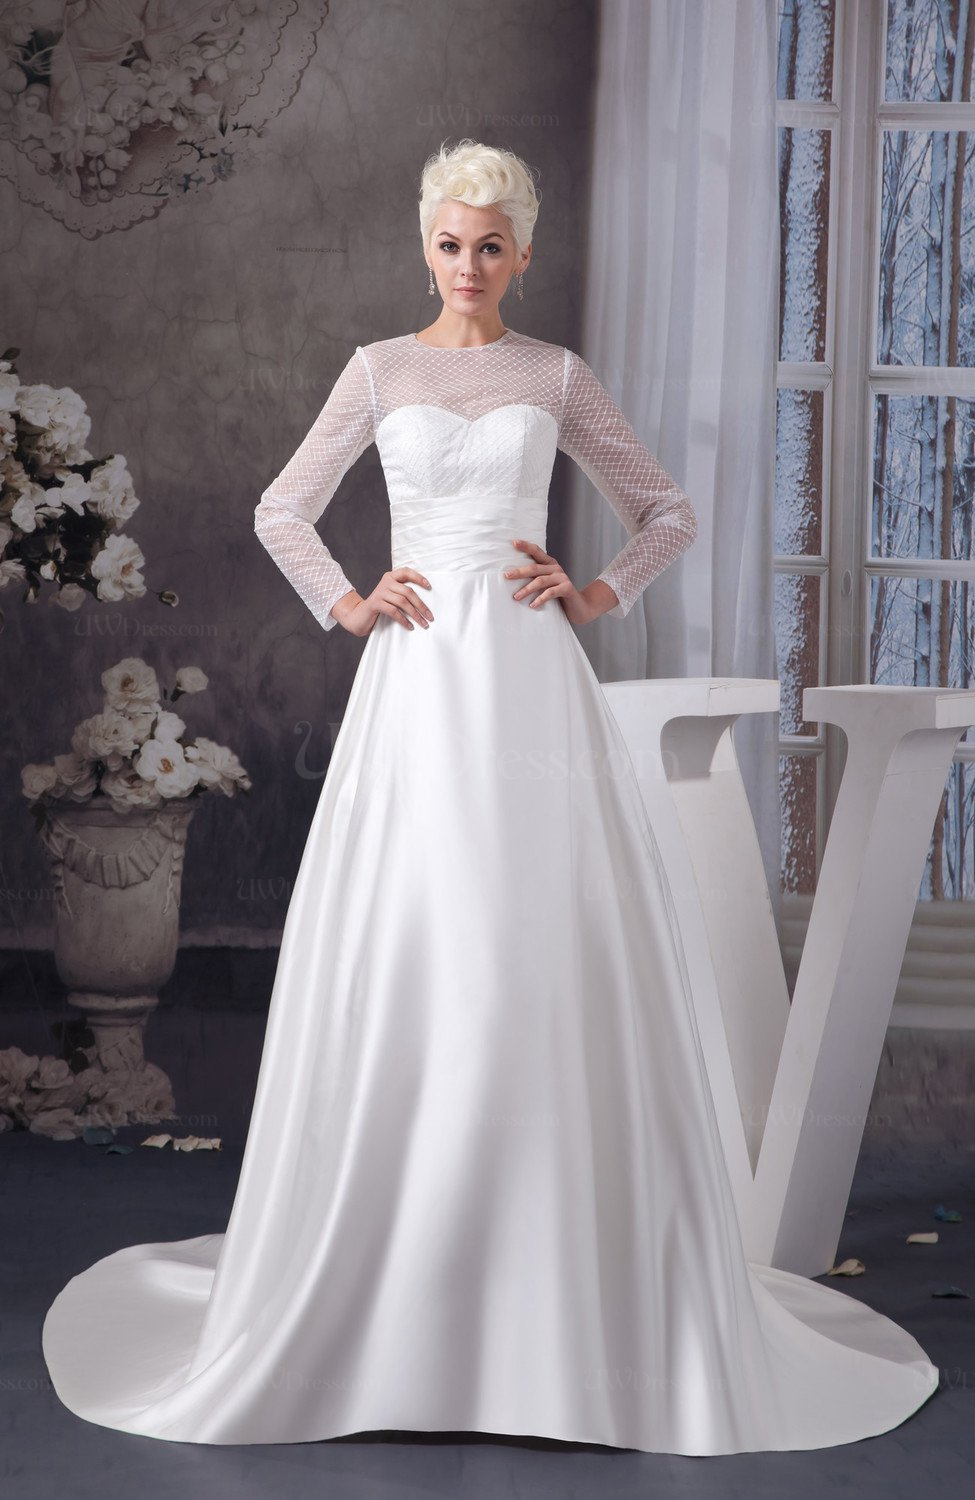 White With Sleeves Bridal Gowns Modest Long Sleeve Amazing